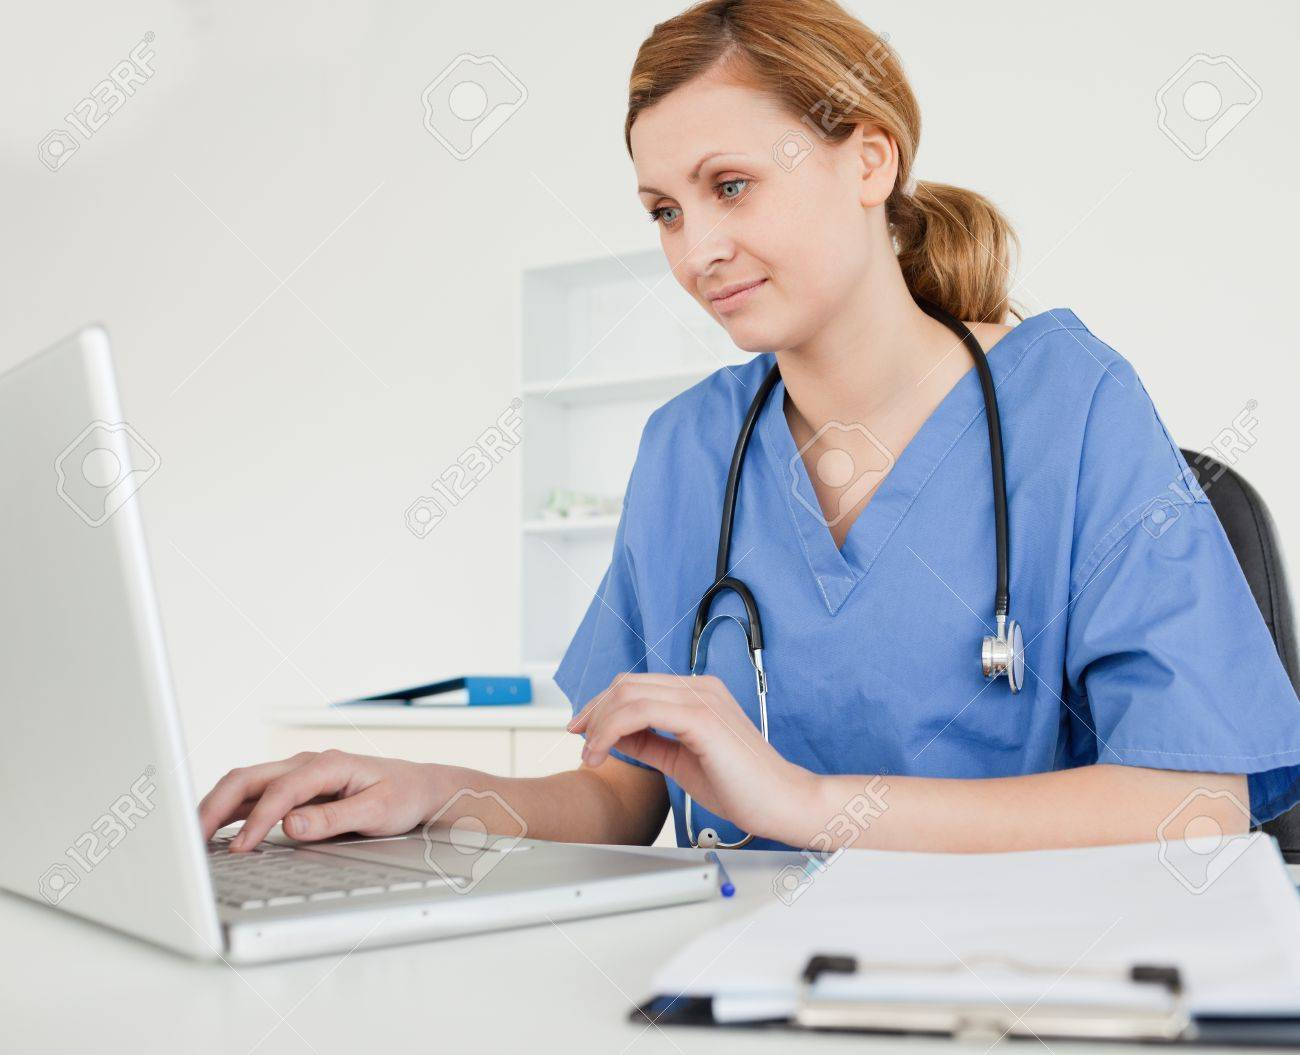 Cute female doctor working on her laptop in her surgery Stock Photo - 10069453